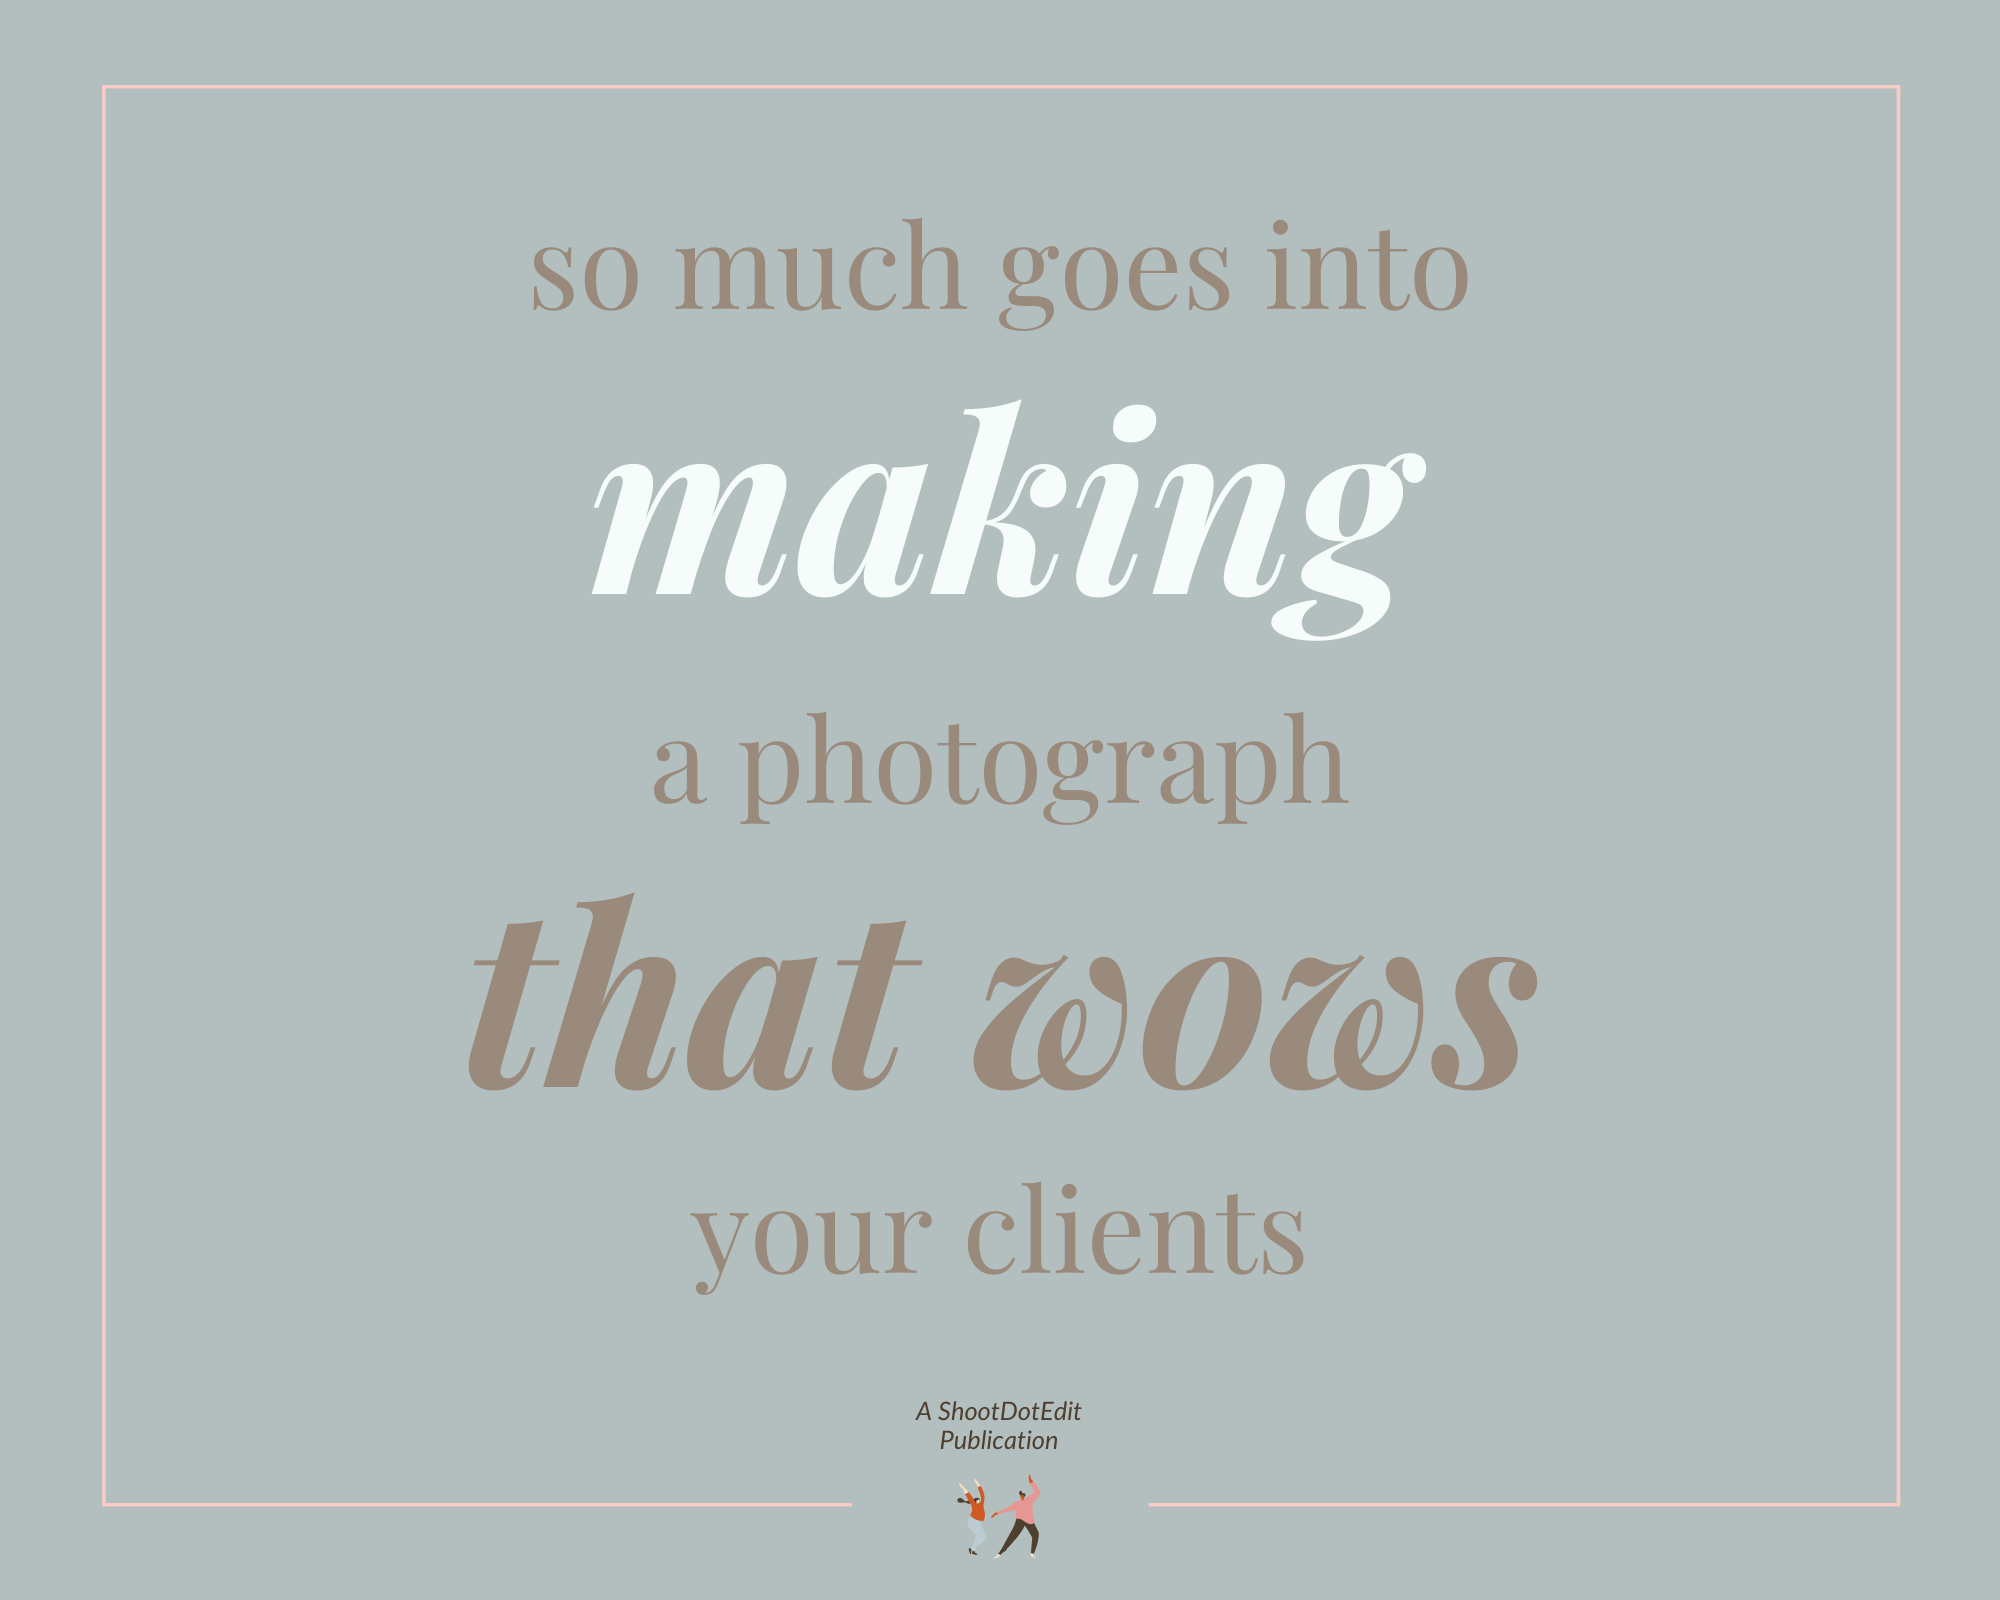 Infographic stating so much goes into making a photograph that wows your clients